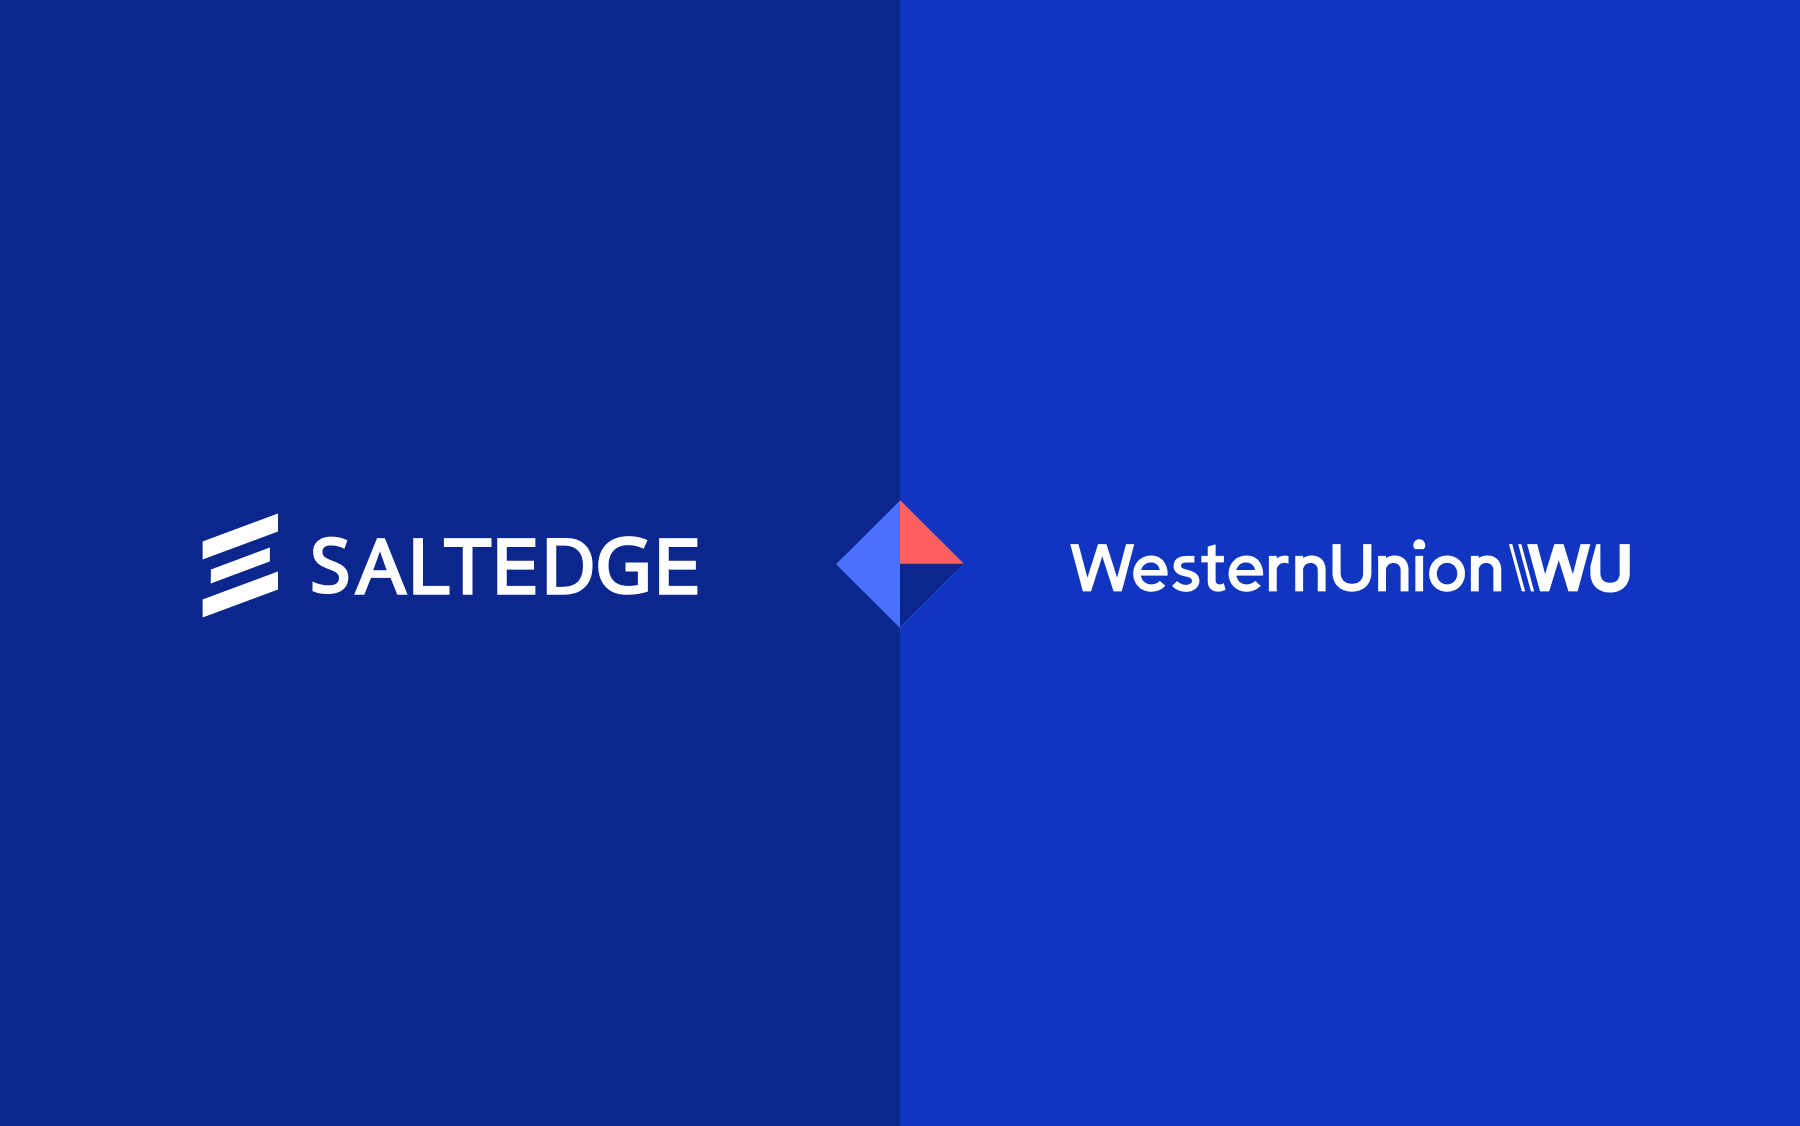 Salt Edge PSD2 Compliance Solution to be integrated into Western Union's Digital Bank Pilot in Europe